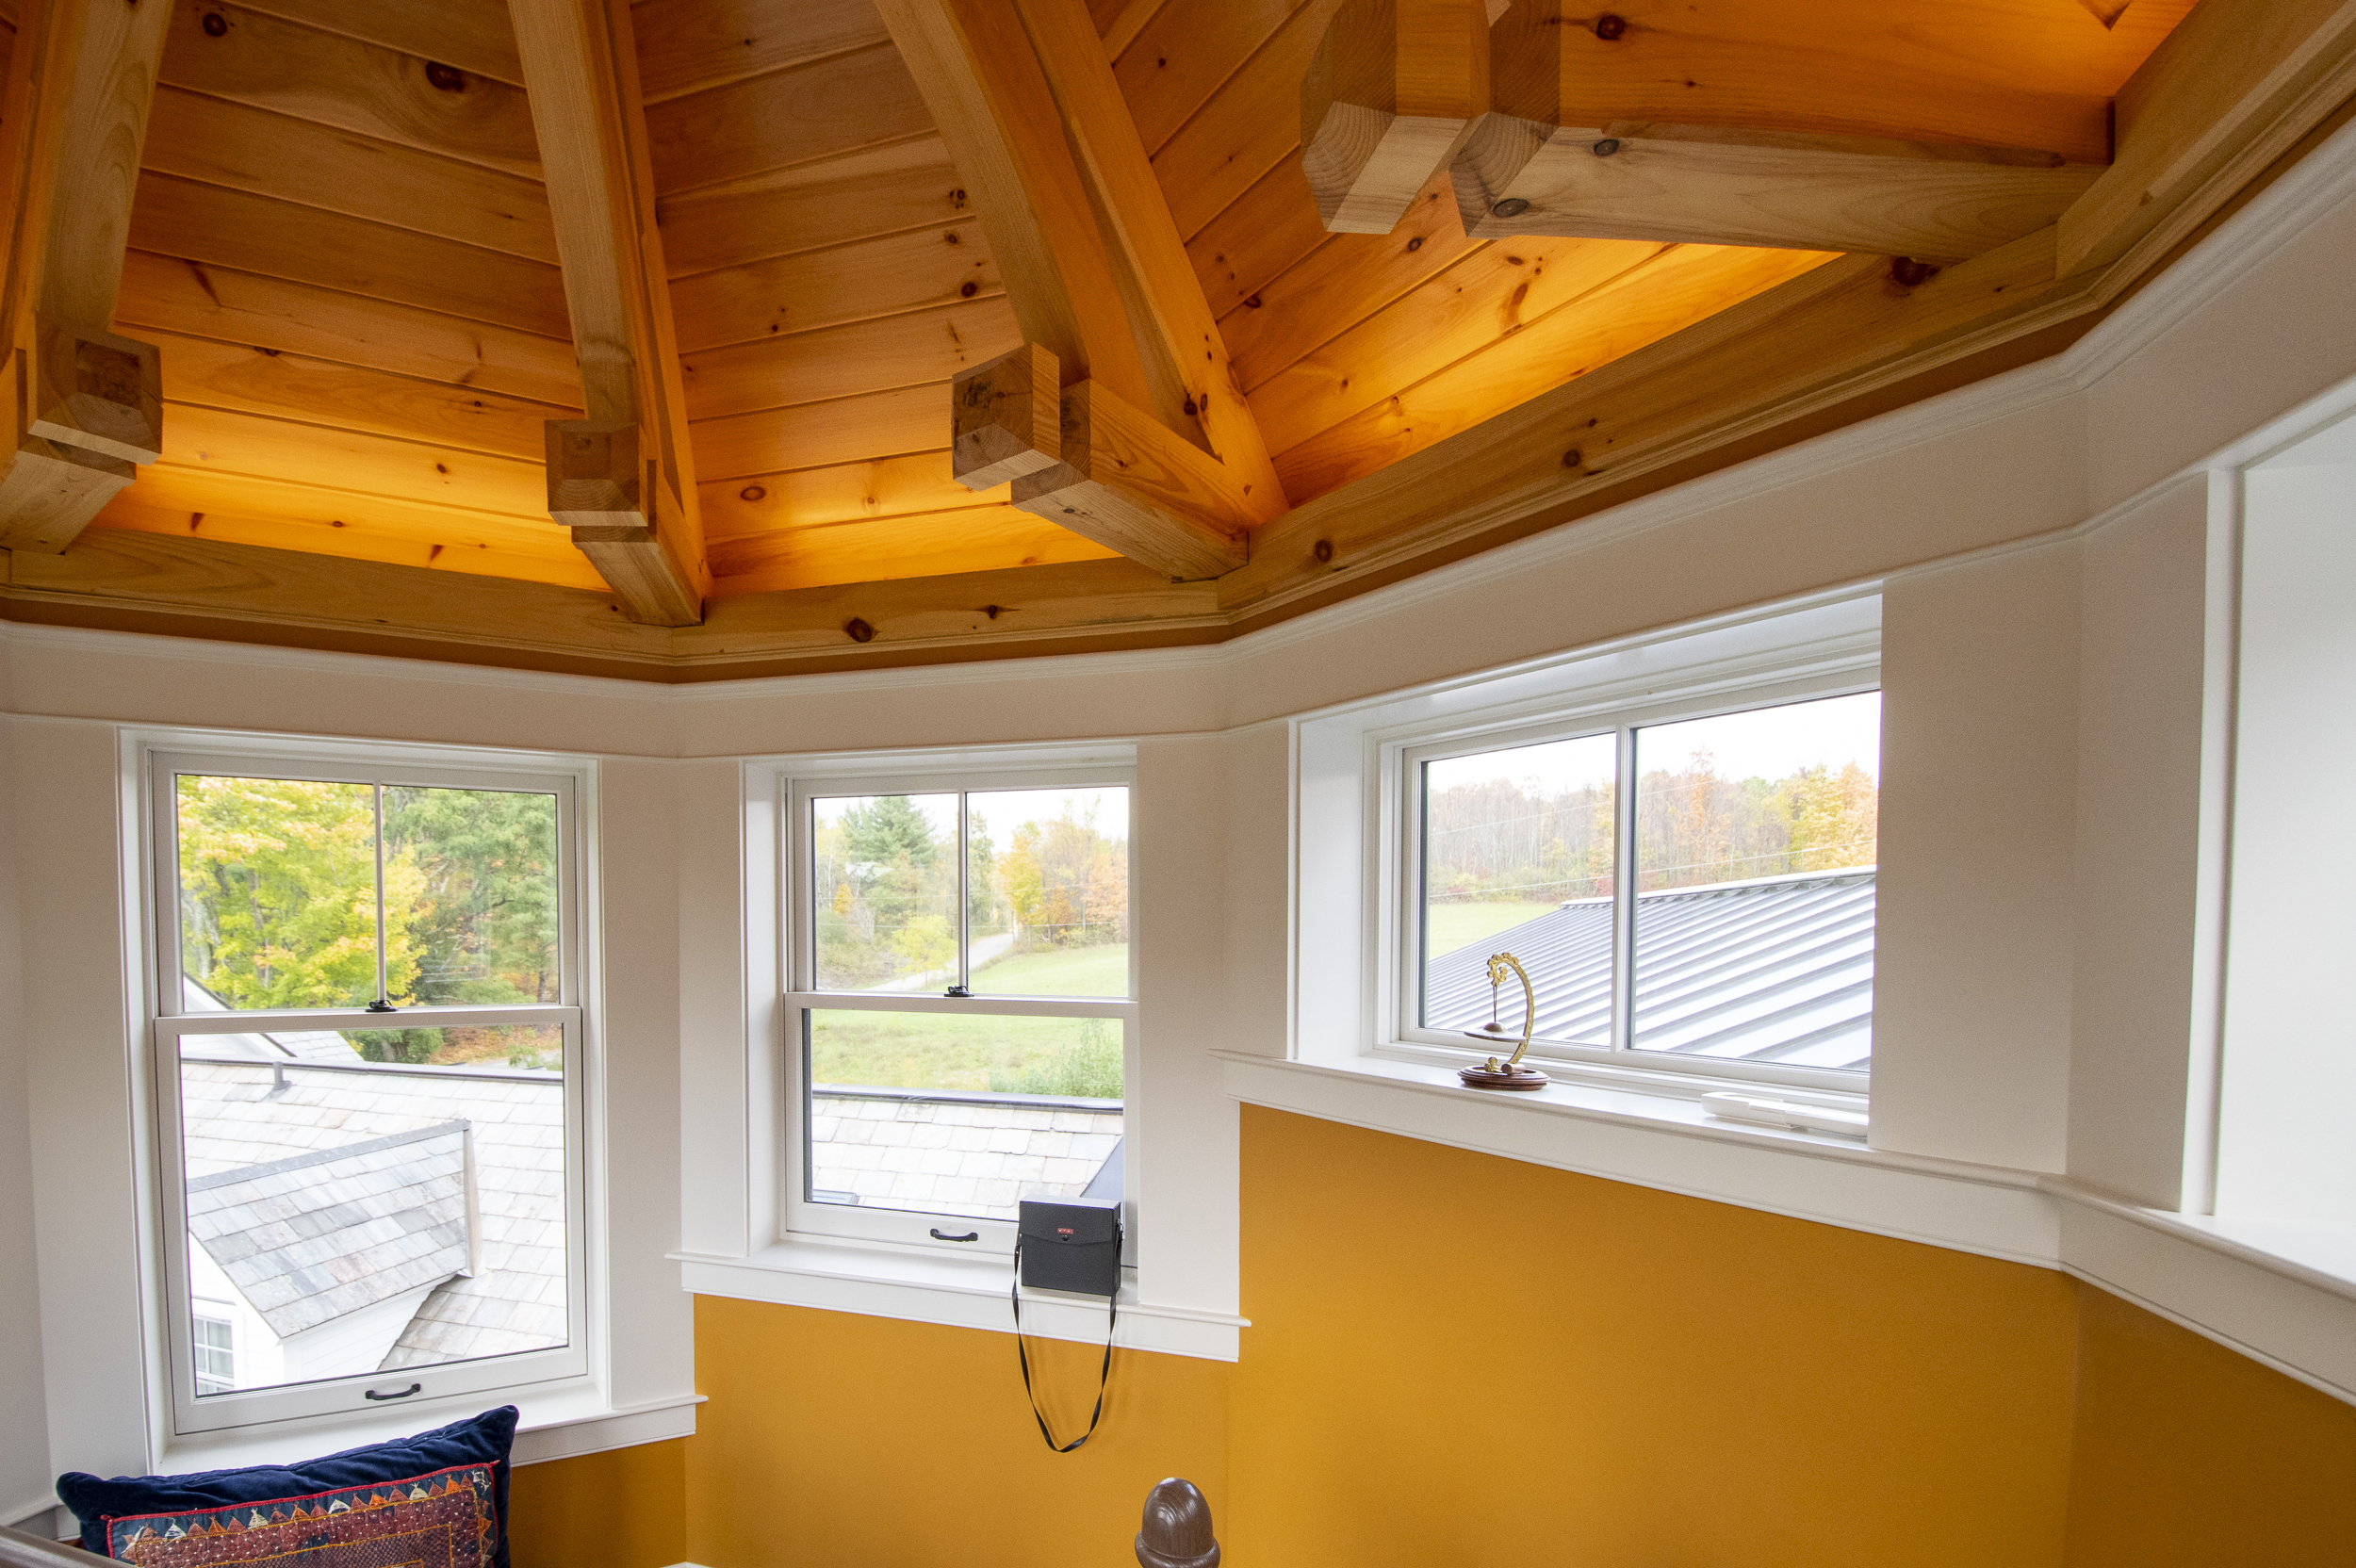 timber frame arch brace post and beam dream home